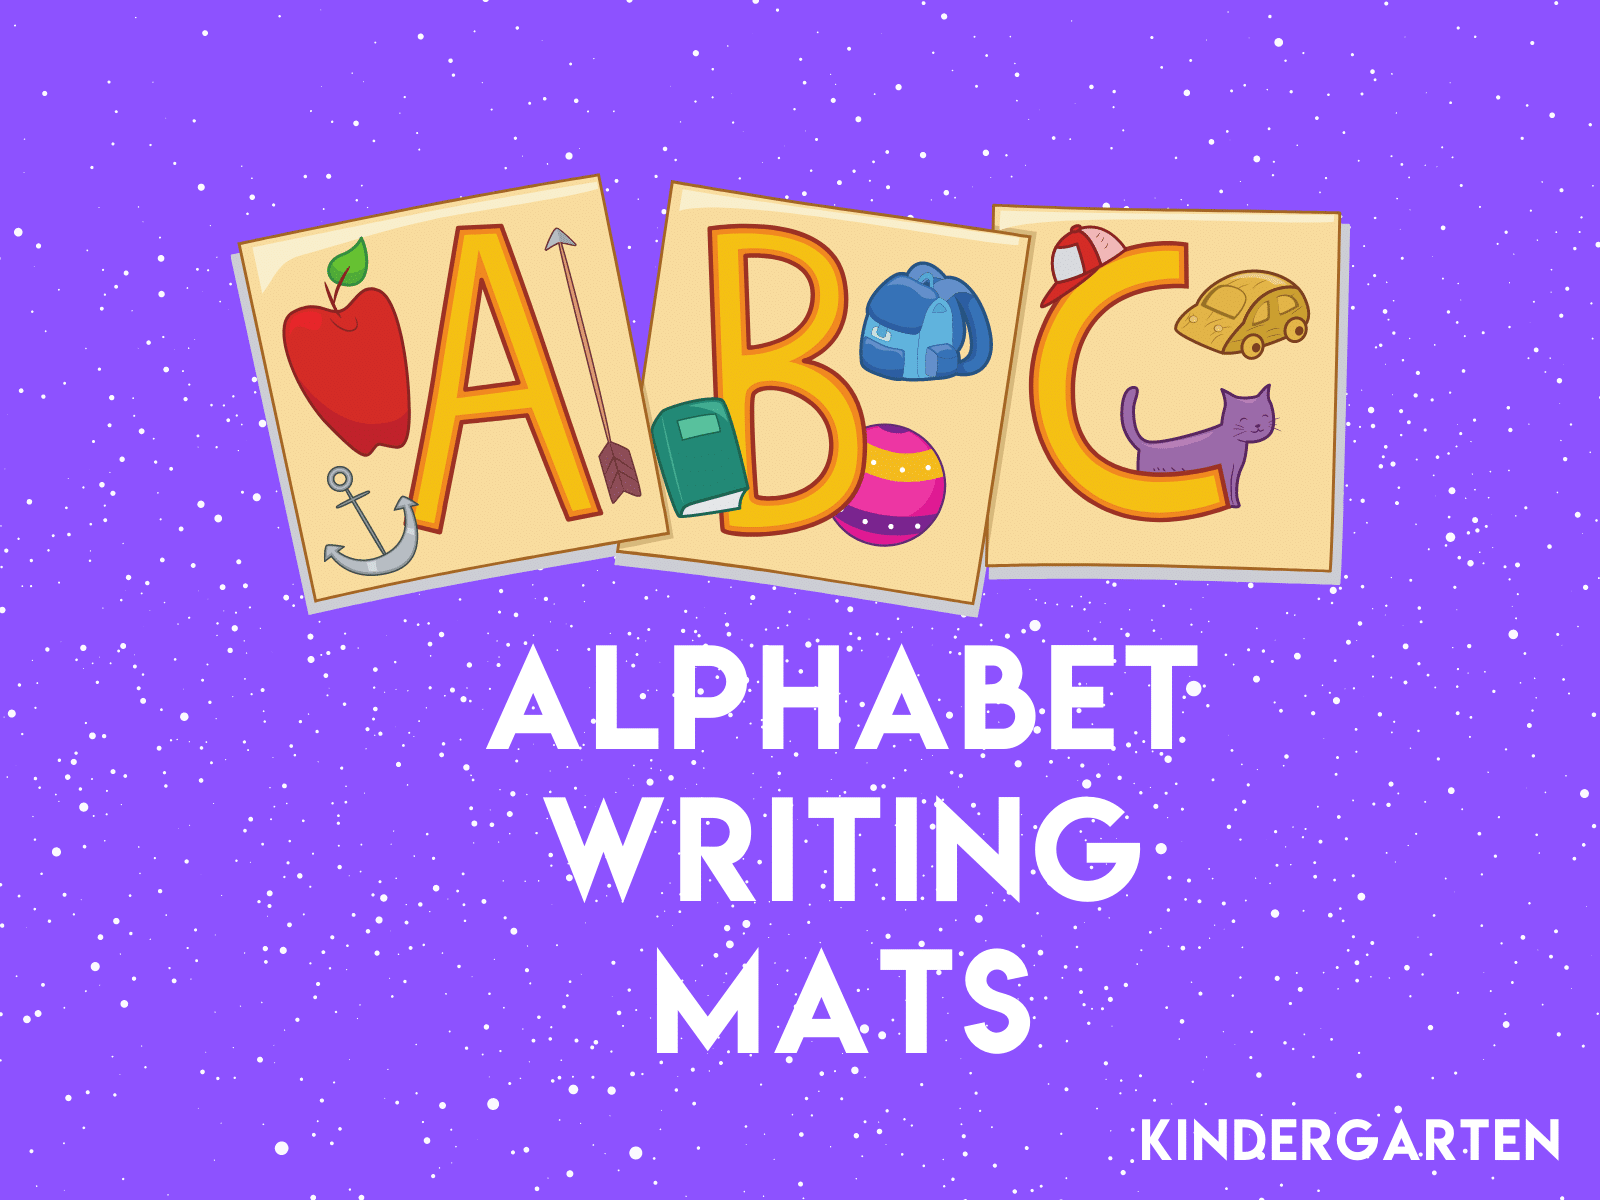 Teach letter writing with these free alphabet writing mats.